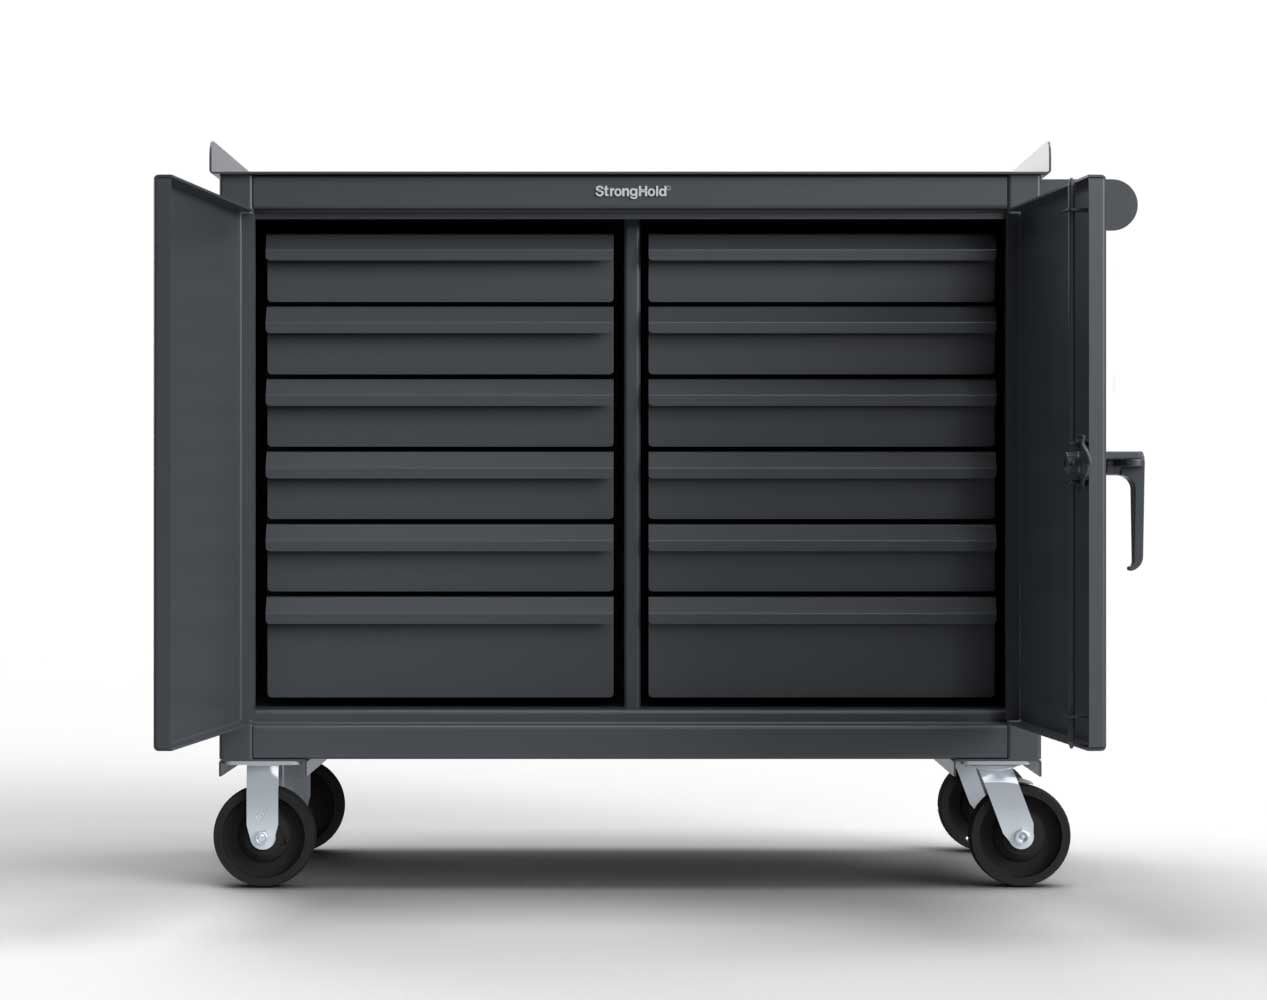 Extra Heavy Duty 12 GA Mobile Tool Cart with 7 GA Steel Top, 12 Half-Width Drawers – 48 in. W x 24 in. D x 44 in. H